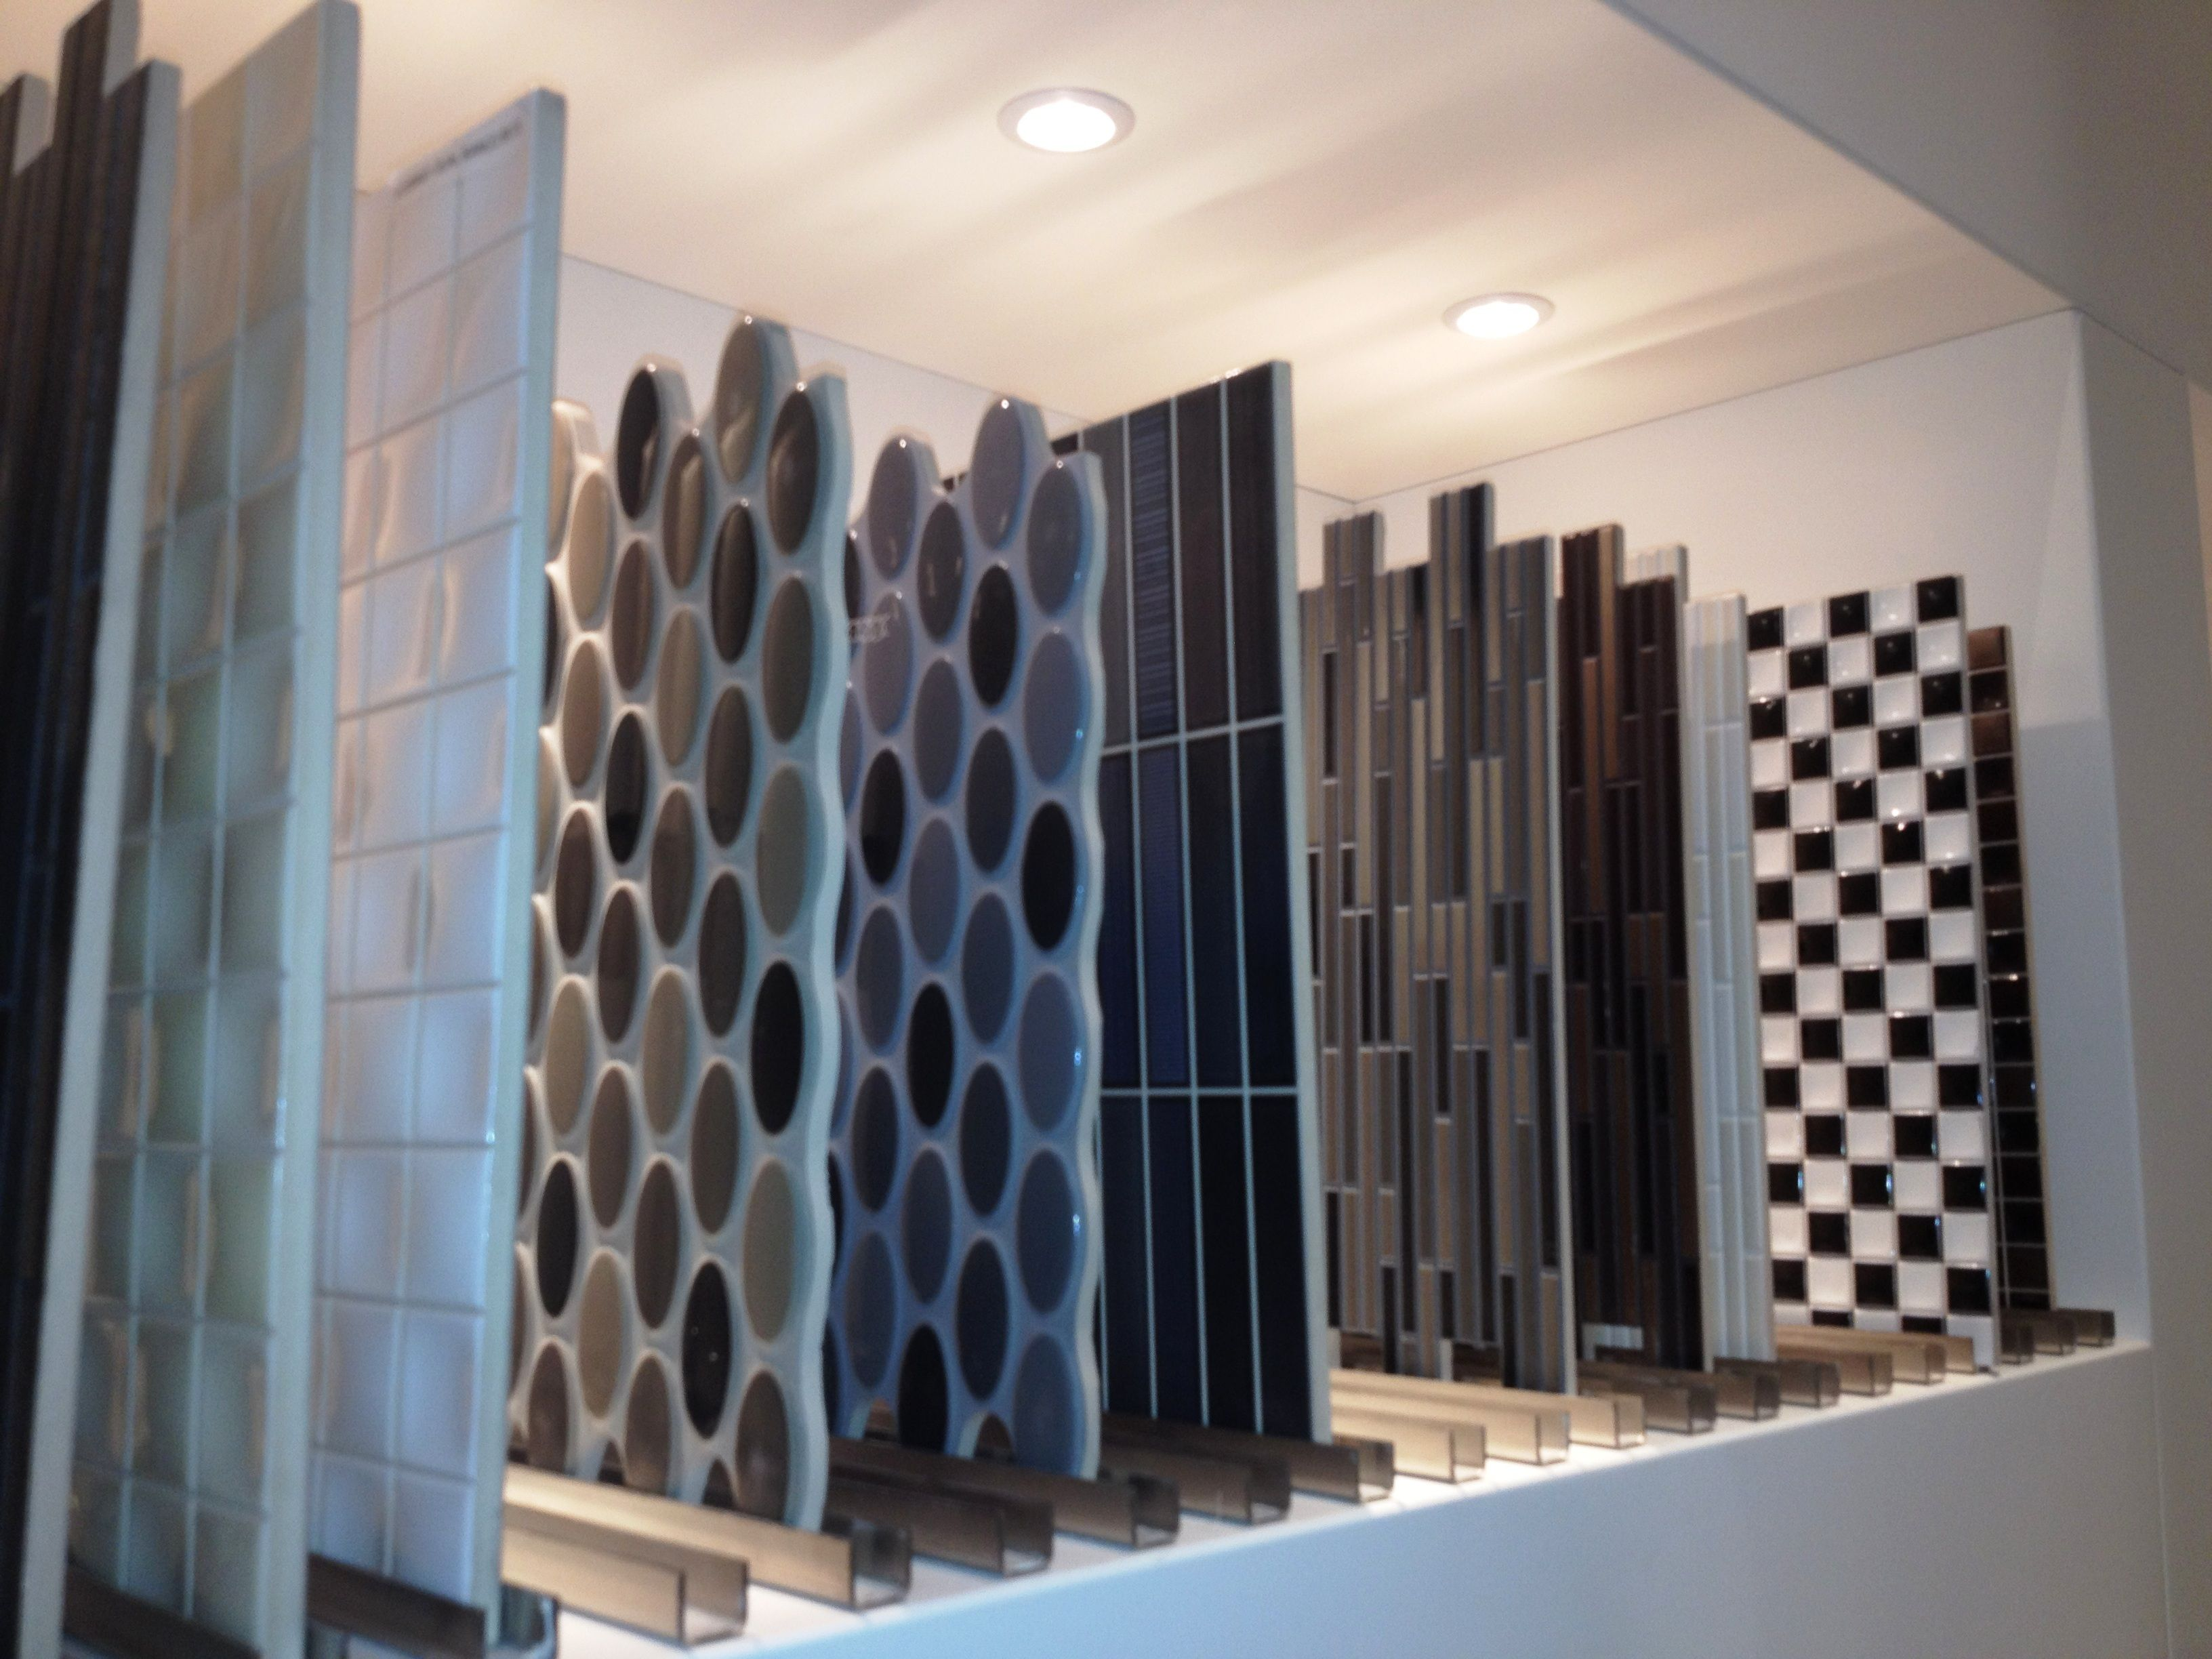 Bathroom Tiles Showroom tile showroom - google search | retail | pinterest | showroom